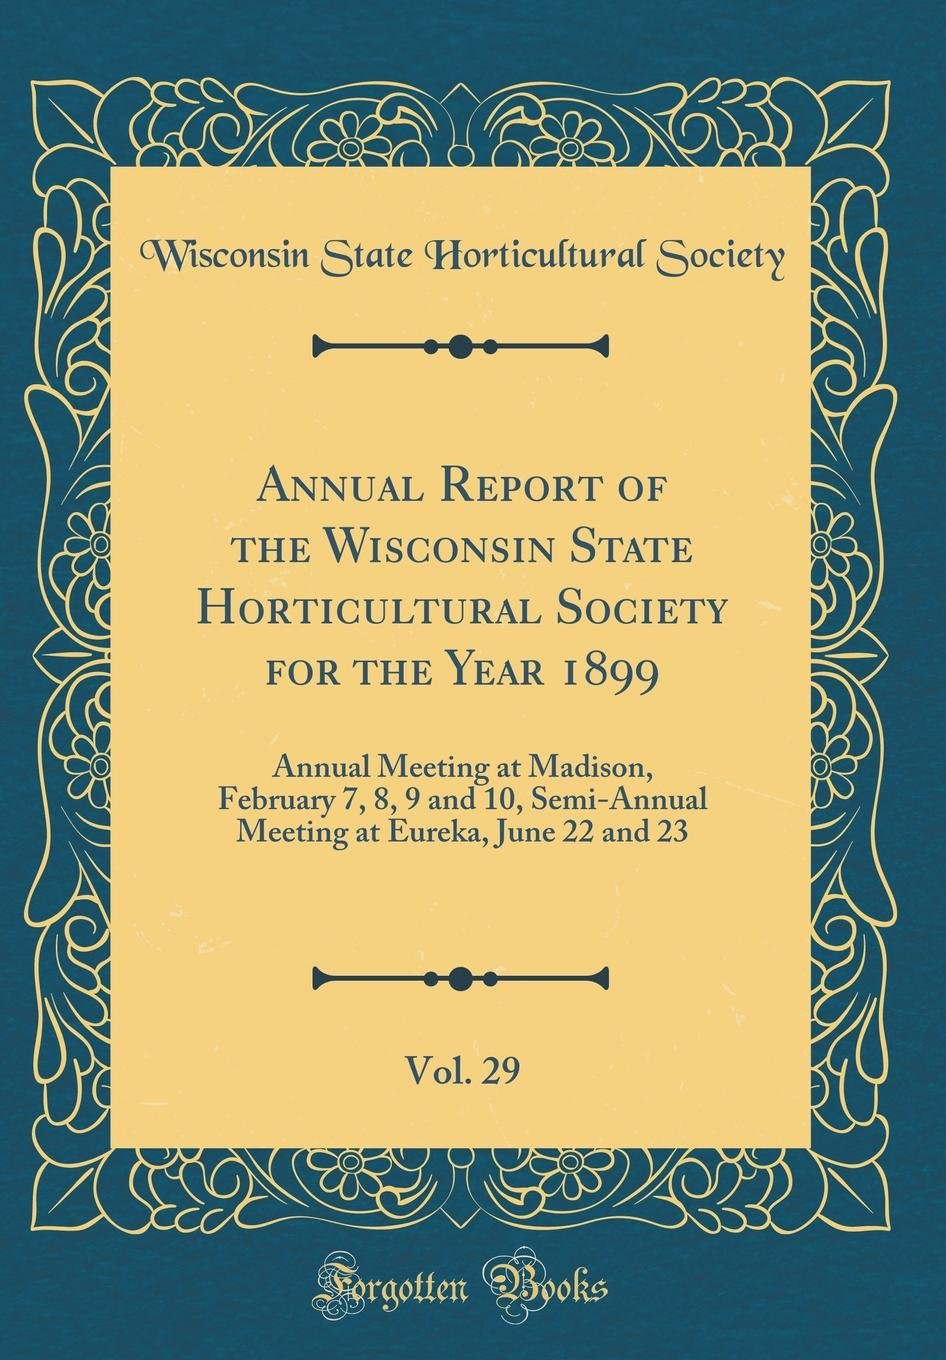 Download Annual Report of the Wisconsin State Horticultural Society for the Year 1899, Vol. 29: Annual Meeting at Madison, February 7, 8, 9 and 10, Semi-Annual ... at Eureka, June 22 and 23 (Classic Reprint) PDF